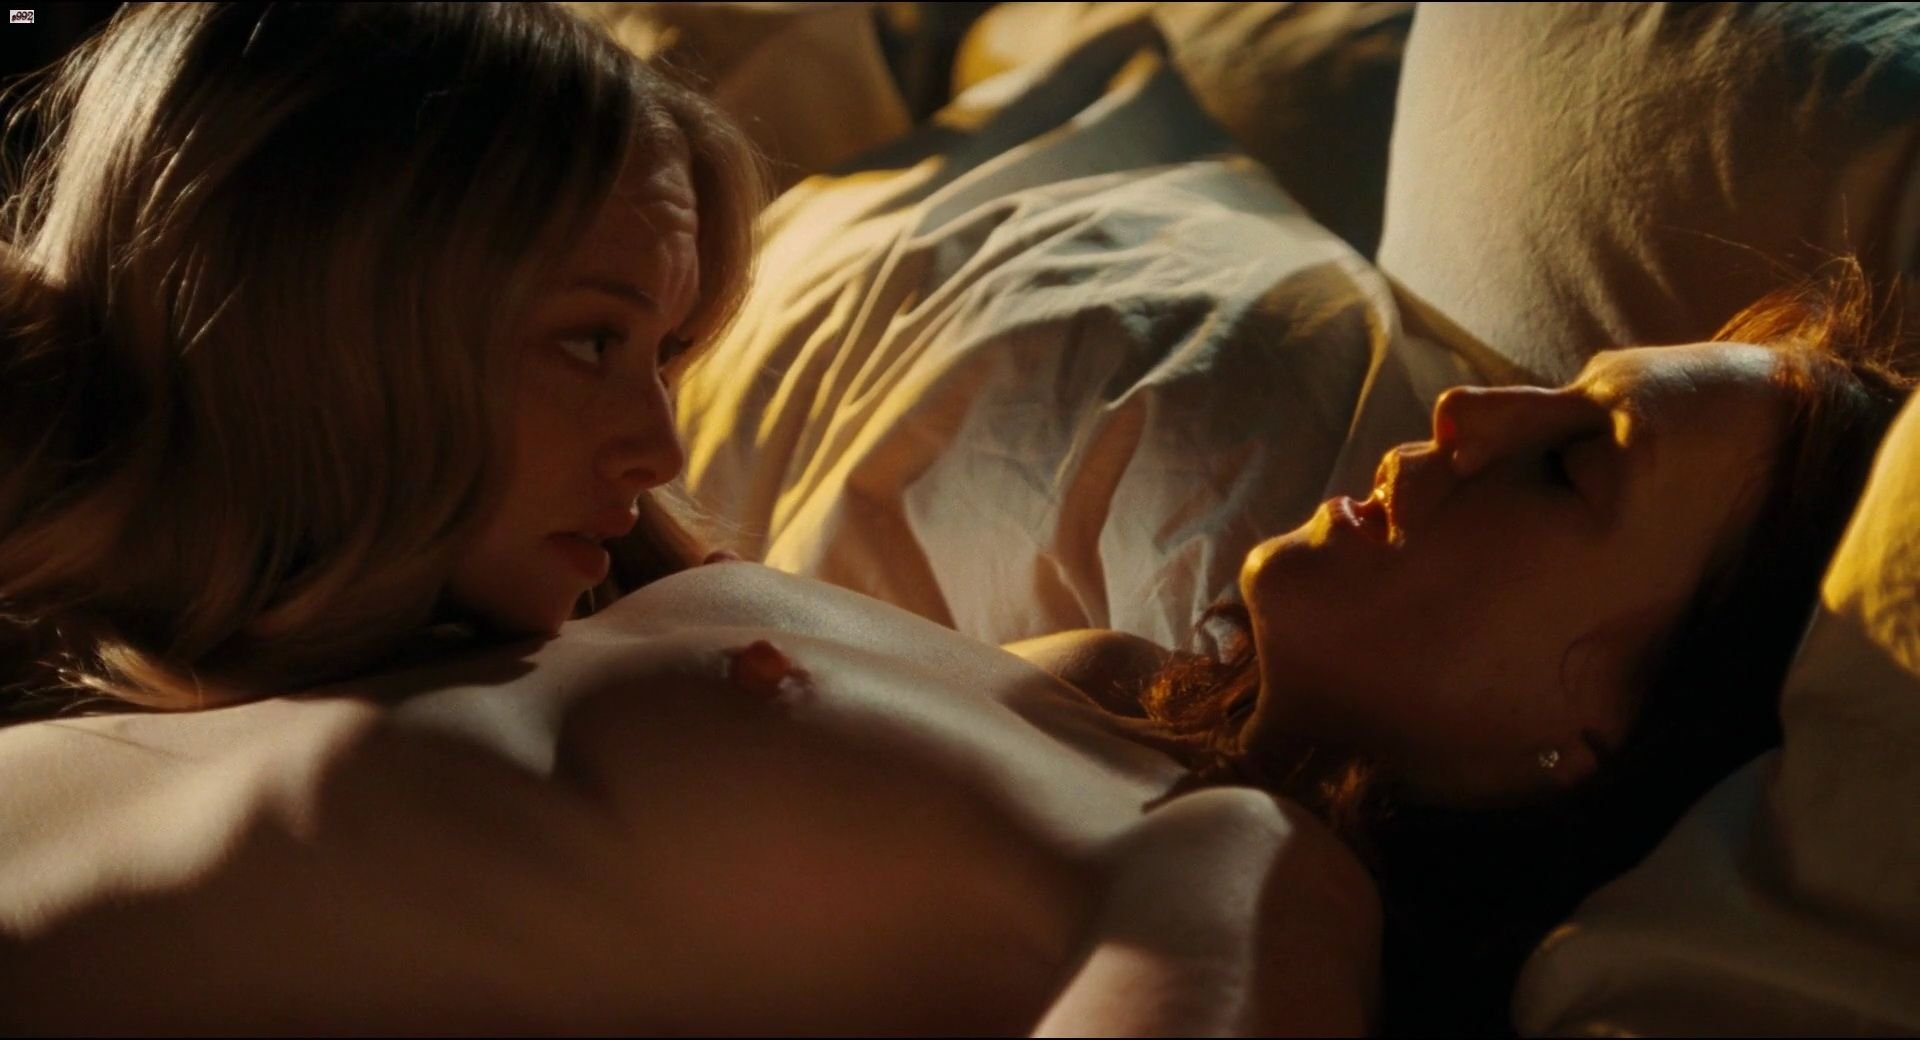 Amanda seyfried and julianne moore sex